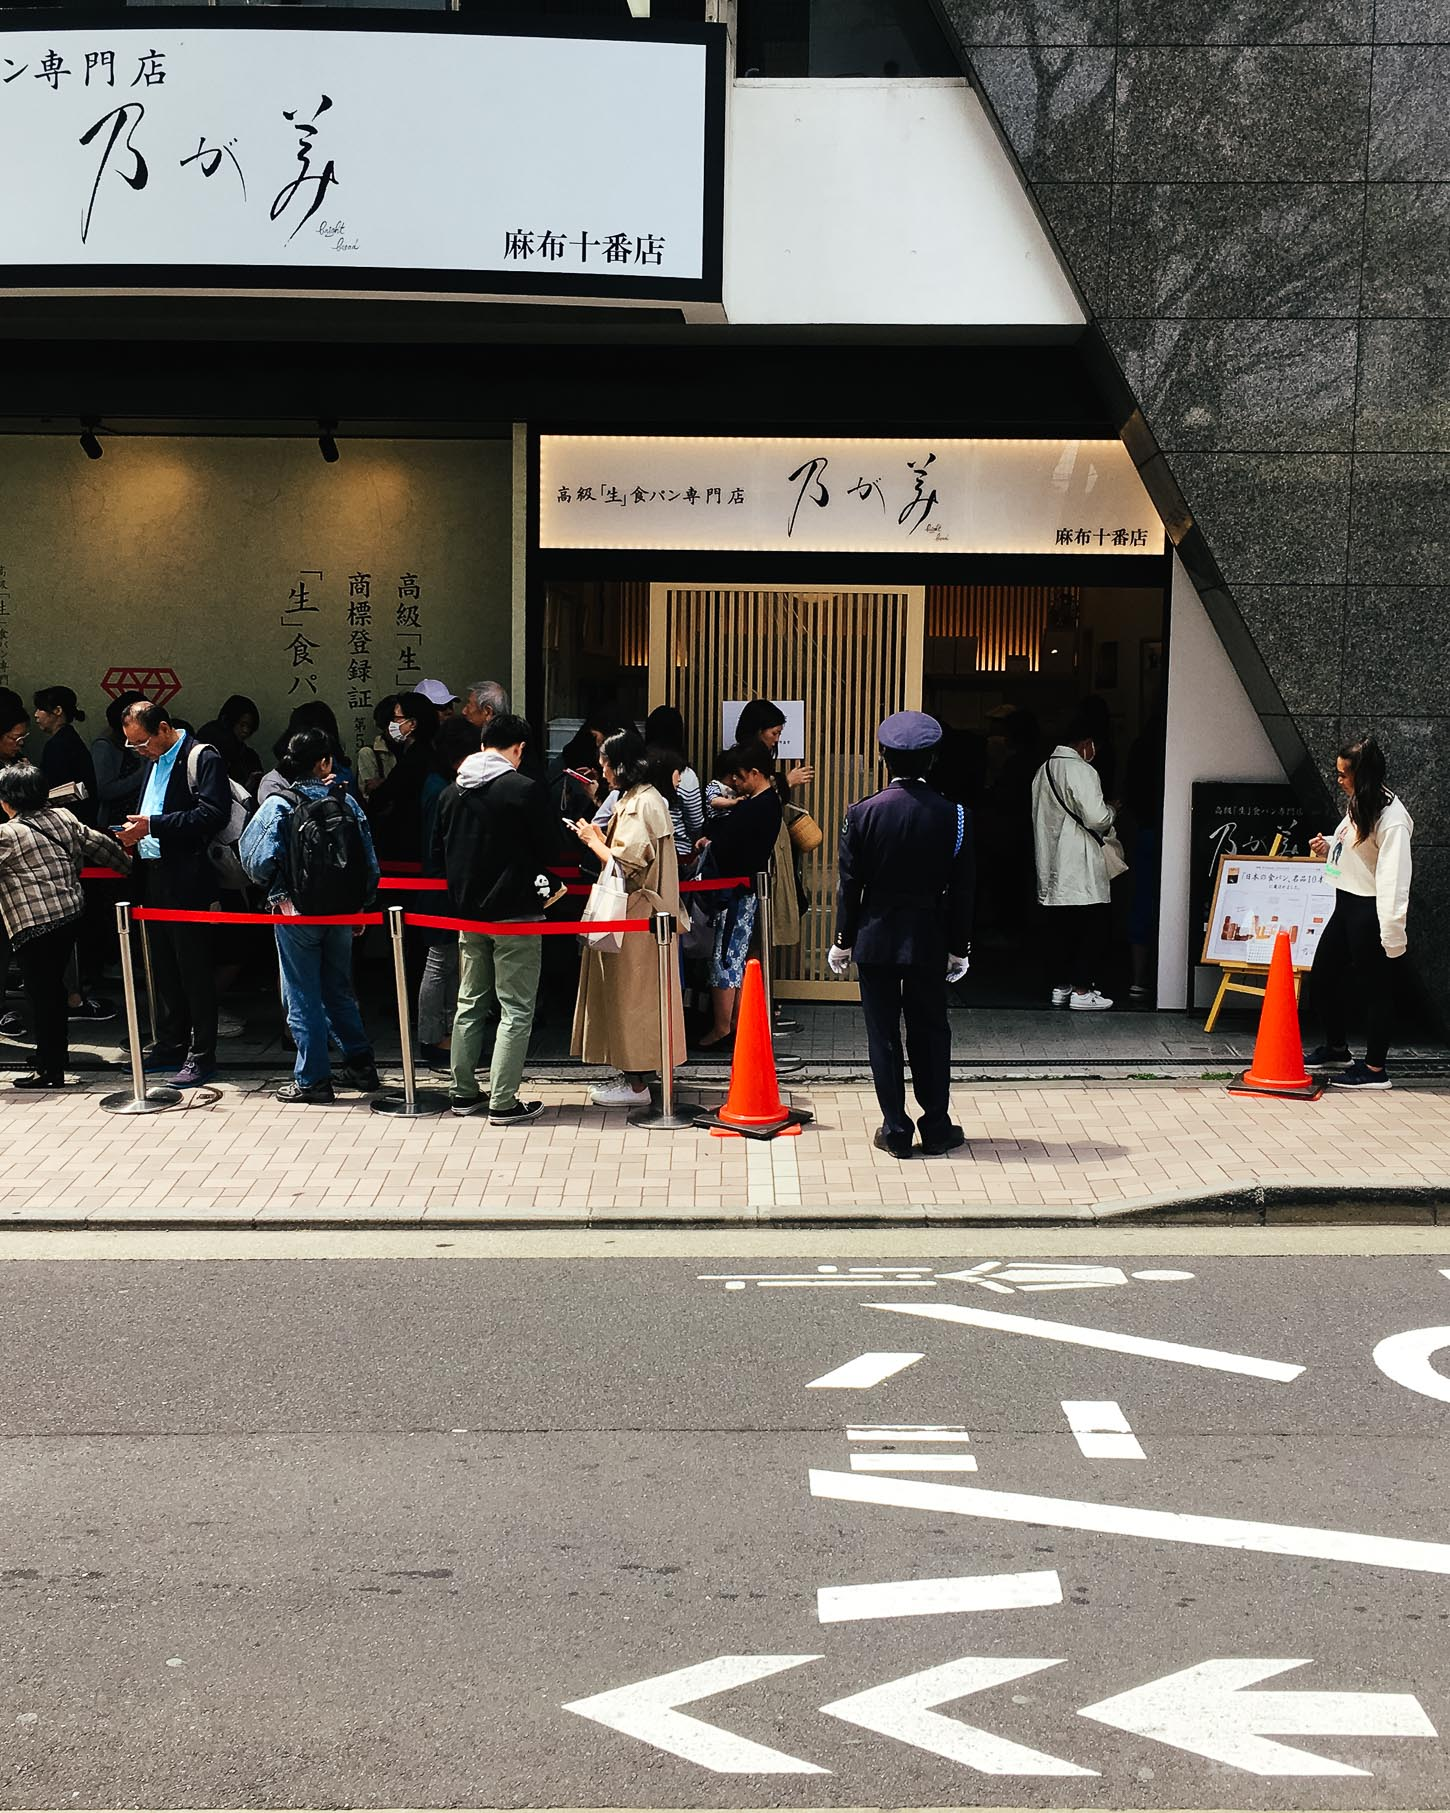 Japan's Famous Nogami Shokupan Bread: People are Lining Up for Hours for this Fluffy White Bread | www.iamafoodblog.com